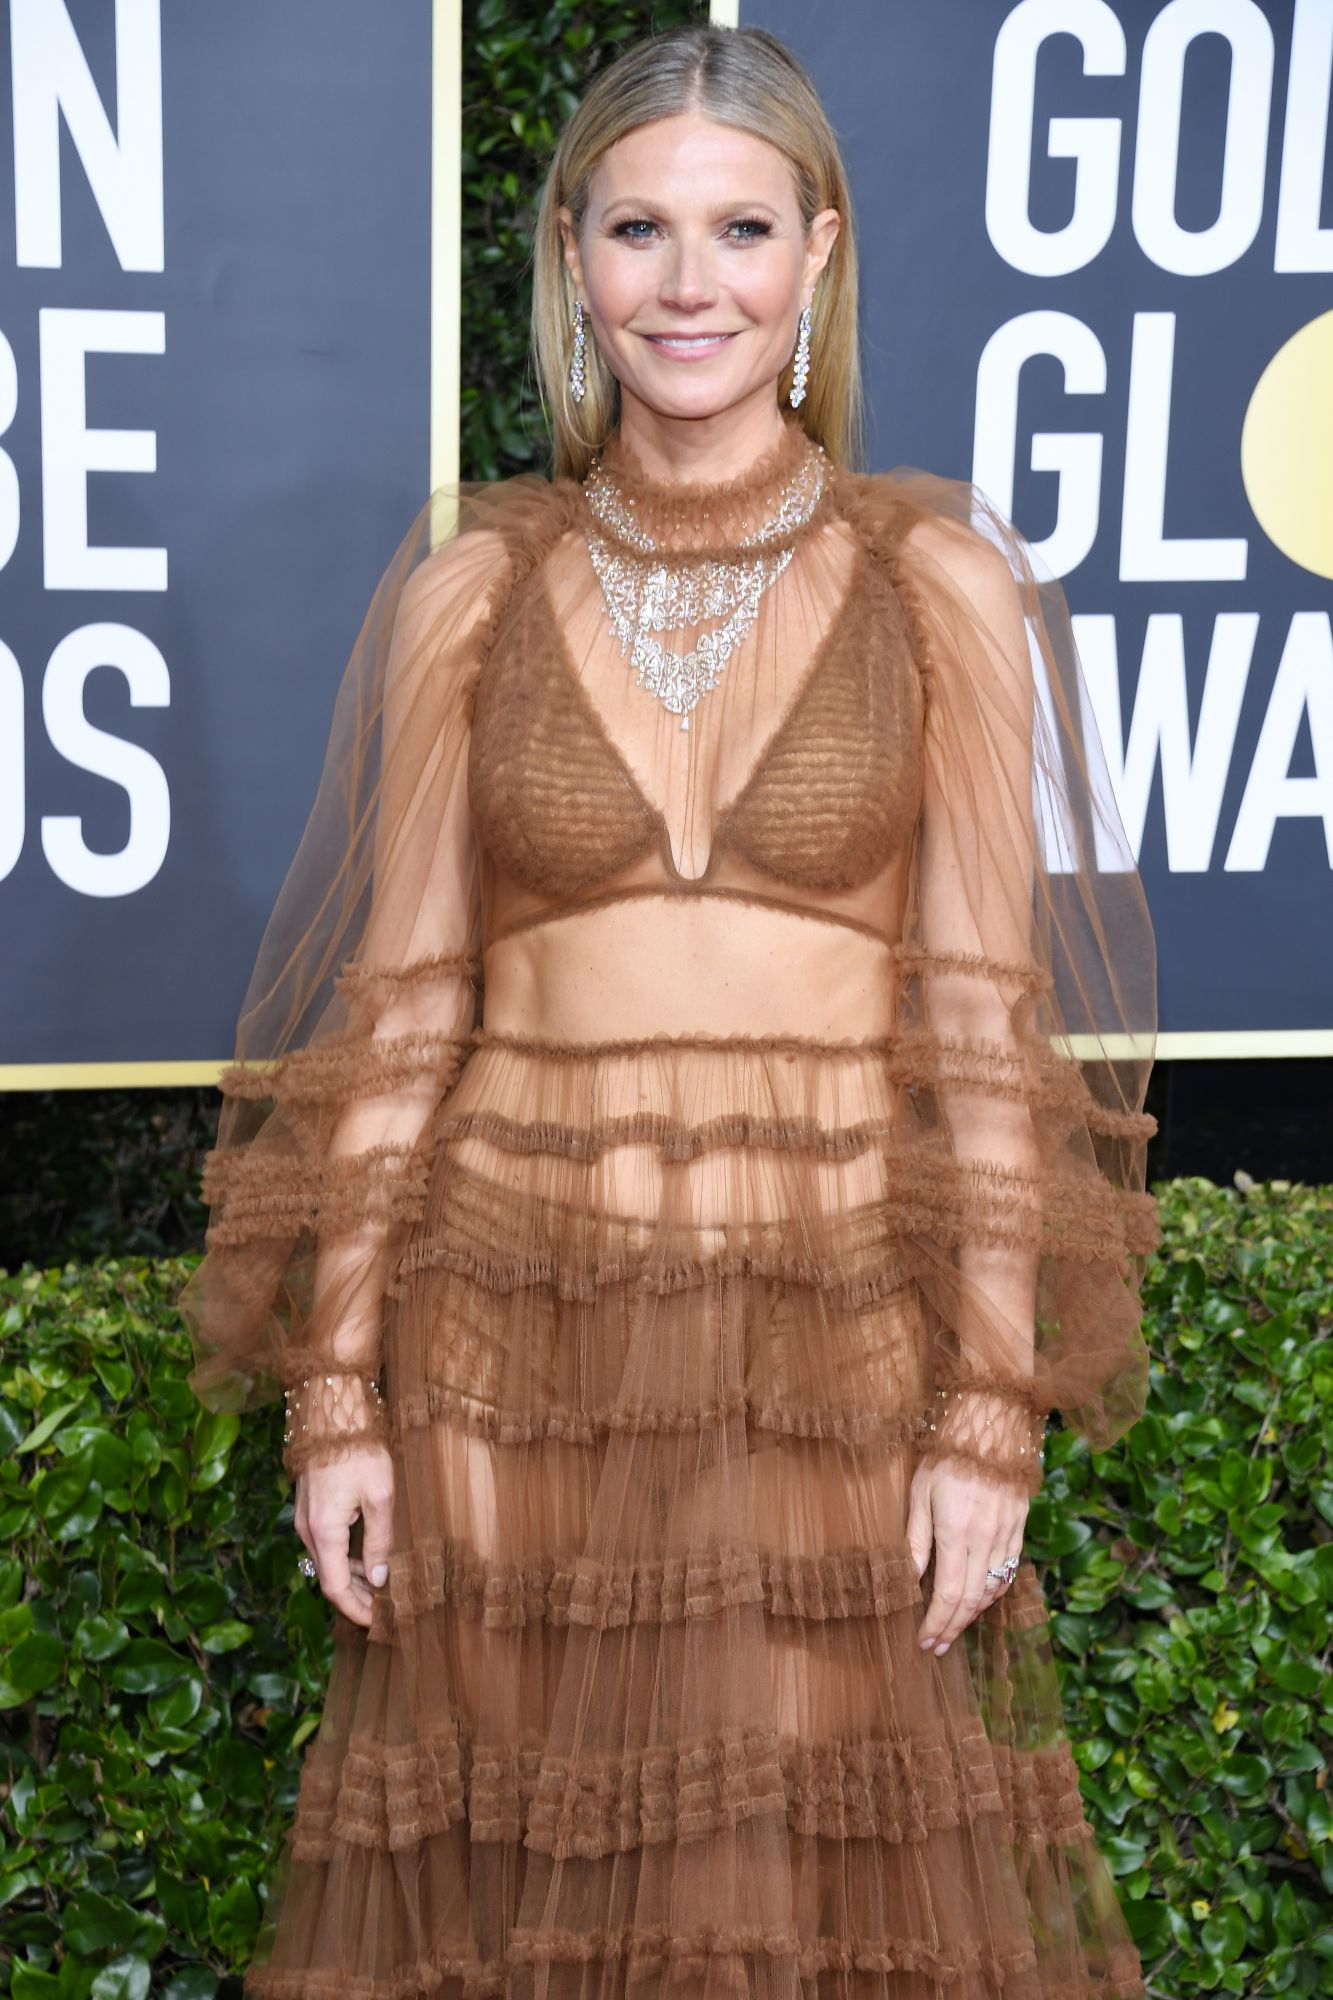 A presenter for the Golden Globes, Gwyneth Paltrow donned two Bulgari Fiorever high jewellery necklaces with earrings and two rings, amassing almost 100 carats of diamonds. Good for her